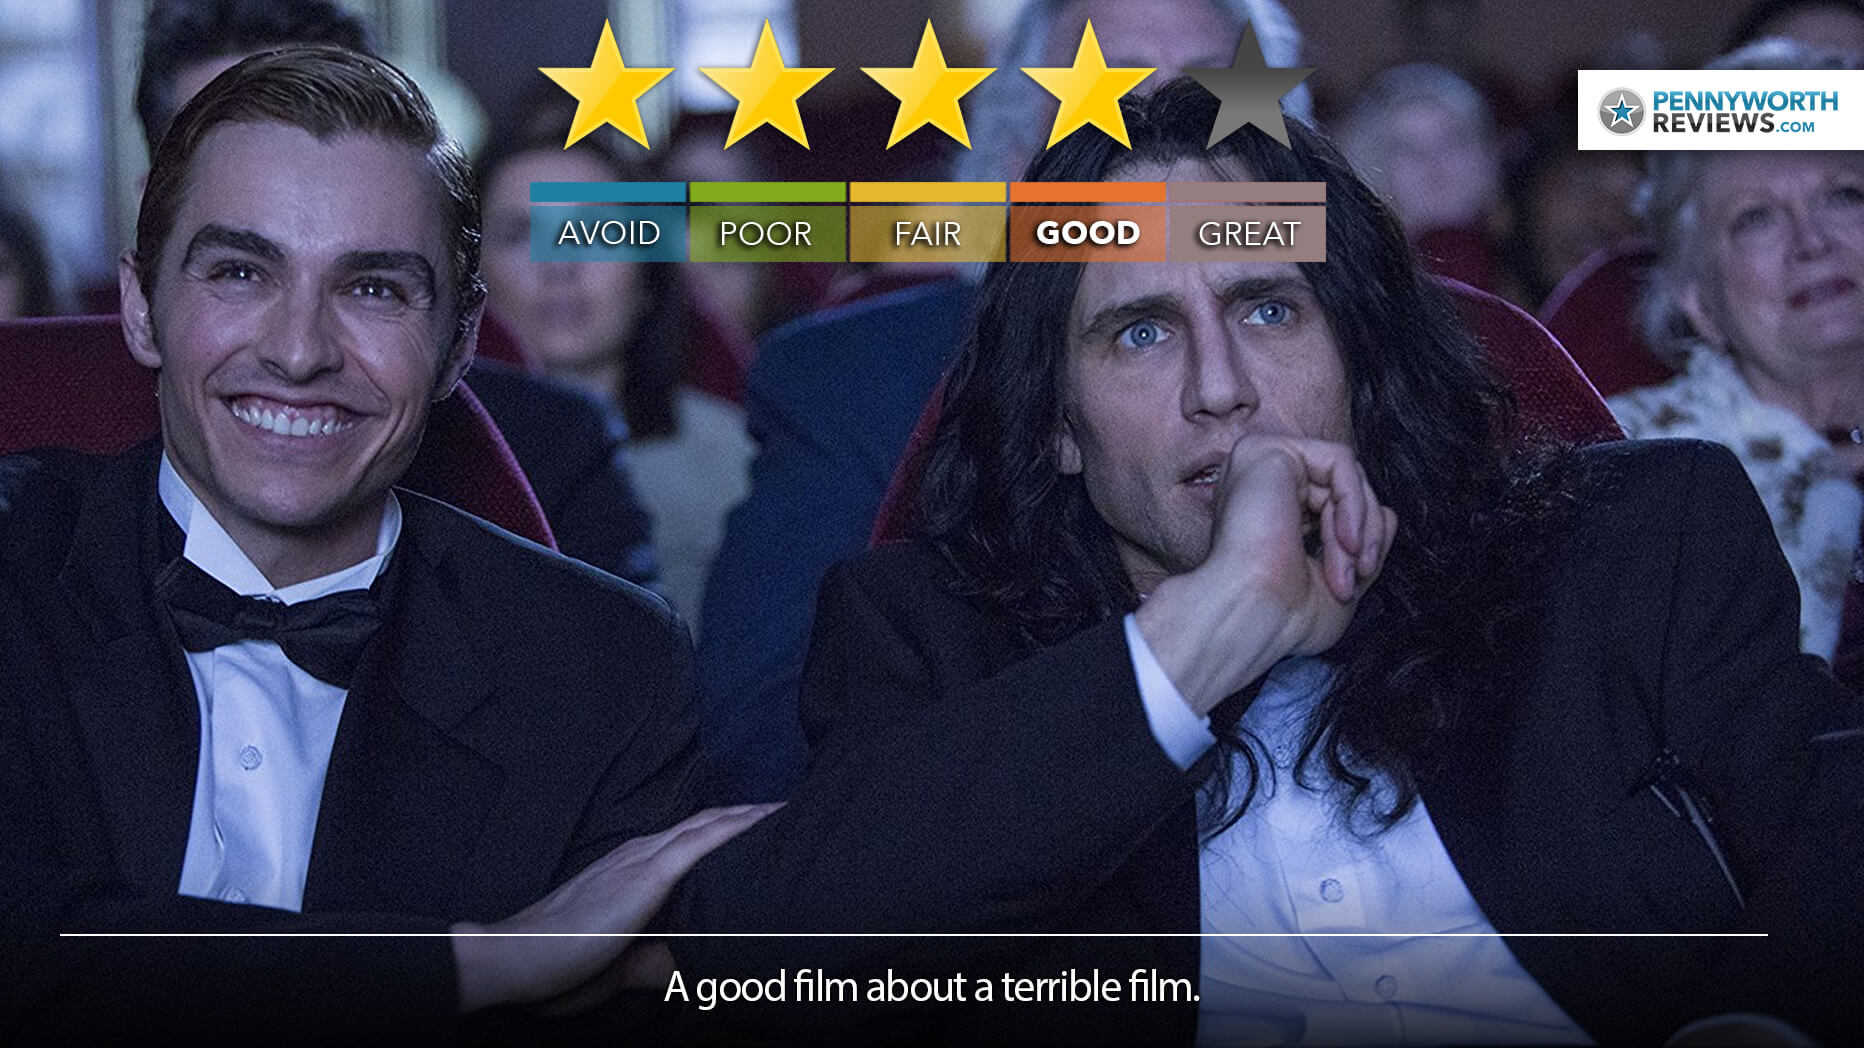 TheDisasterArtist